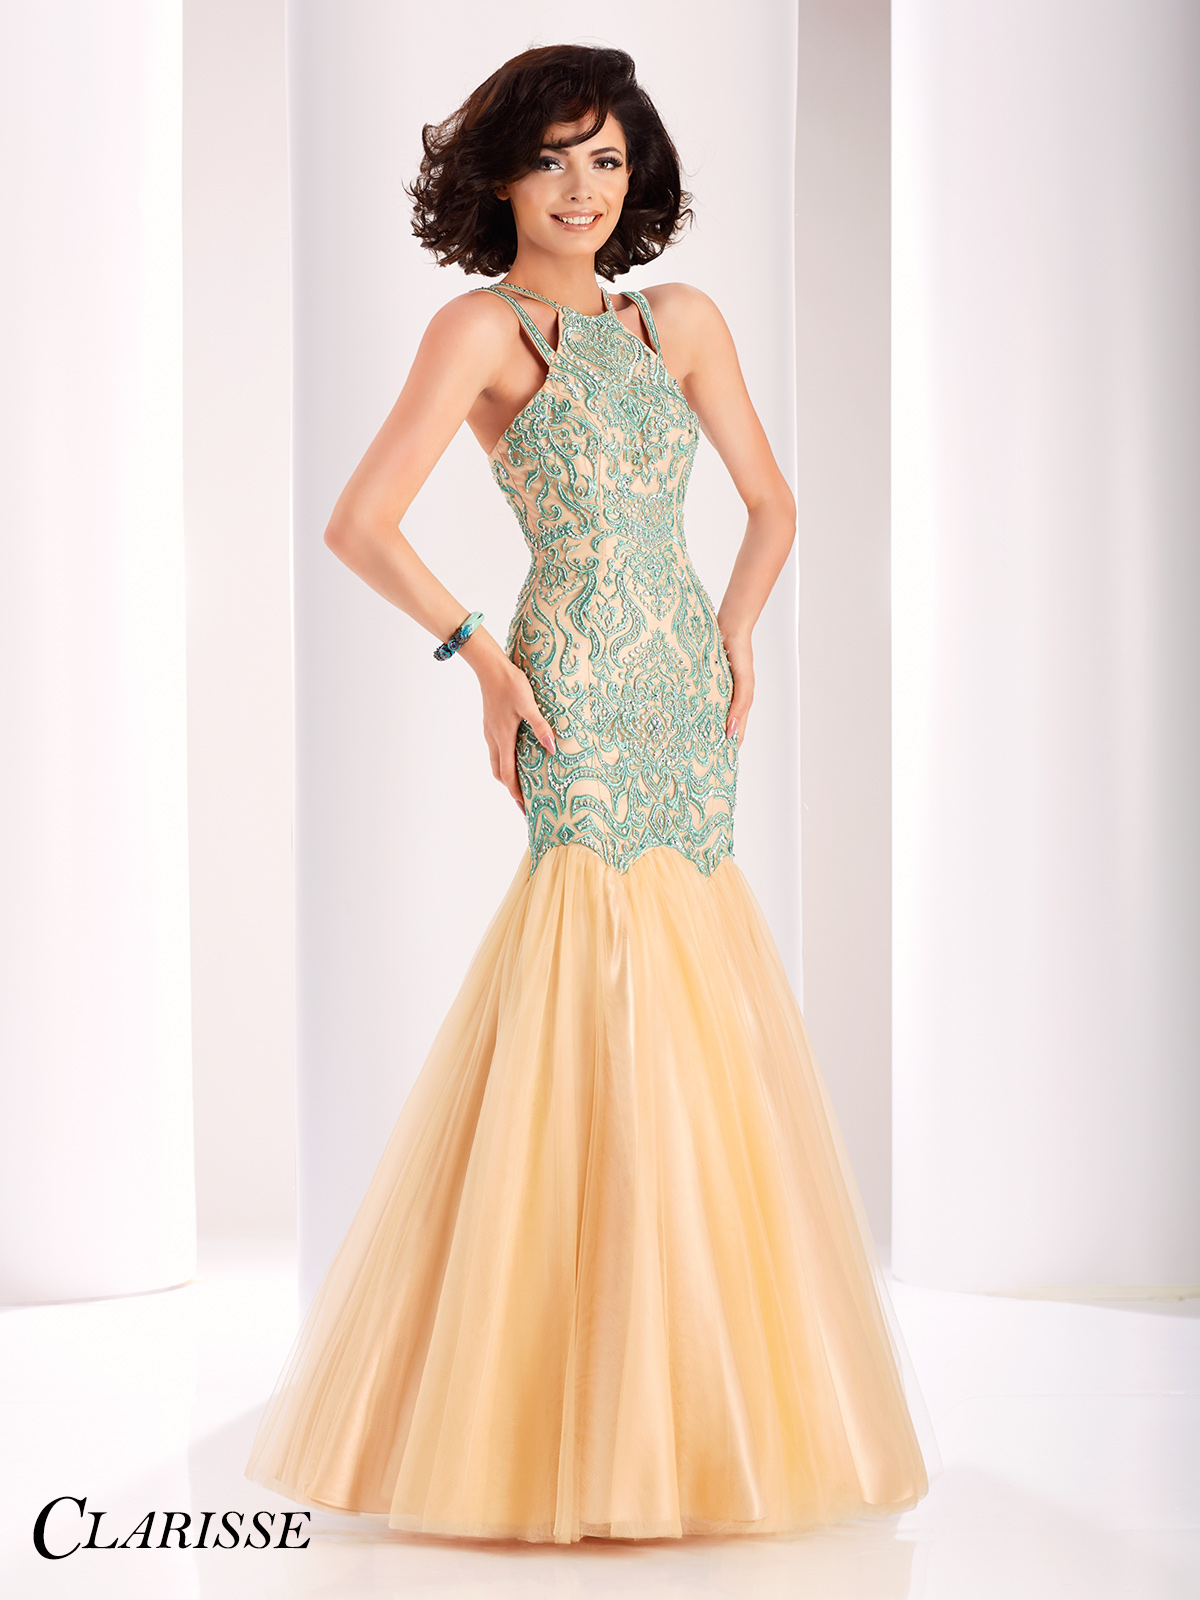 Clarisse Prom Dress 4856 | Promgirl.net